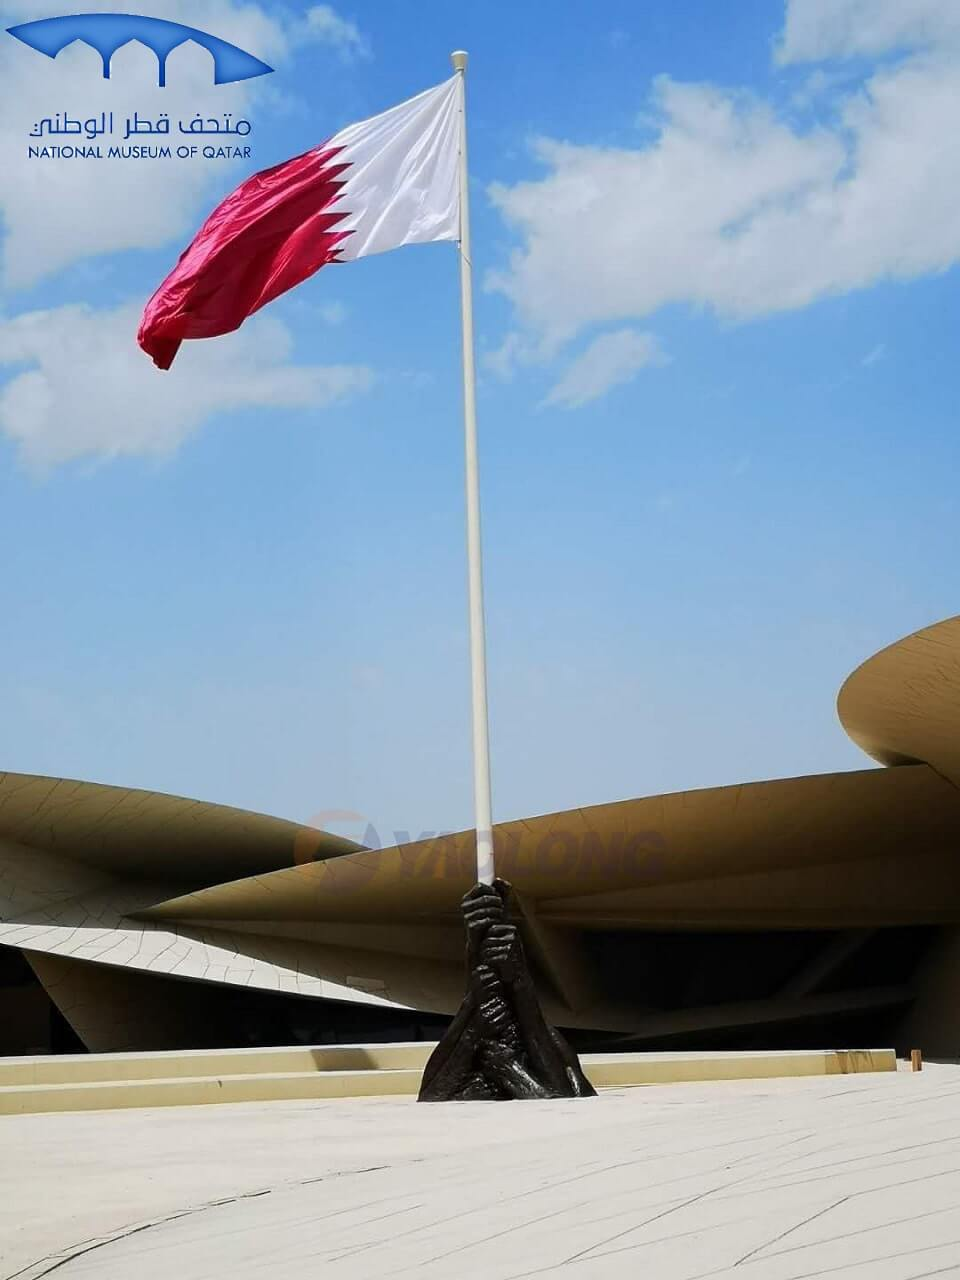 20 Meter Stainless Steel Flagpole Supplied To Qatar National Museum